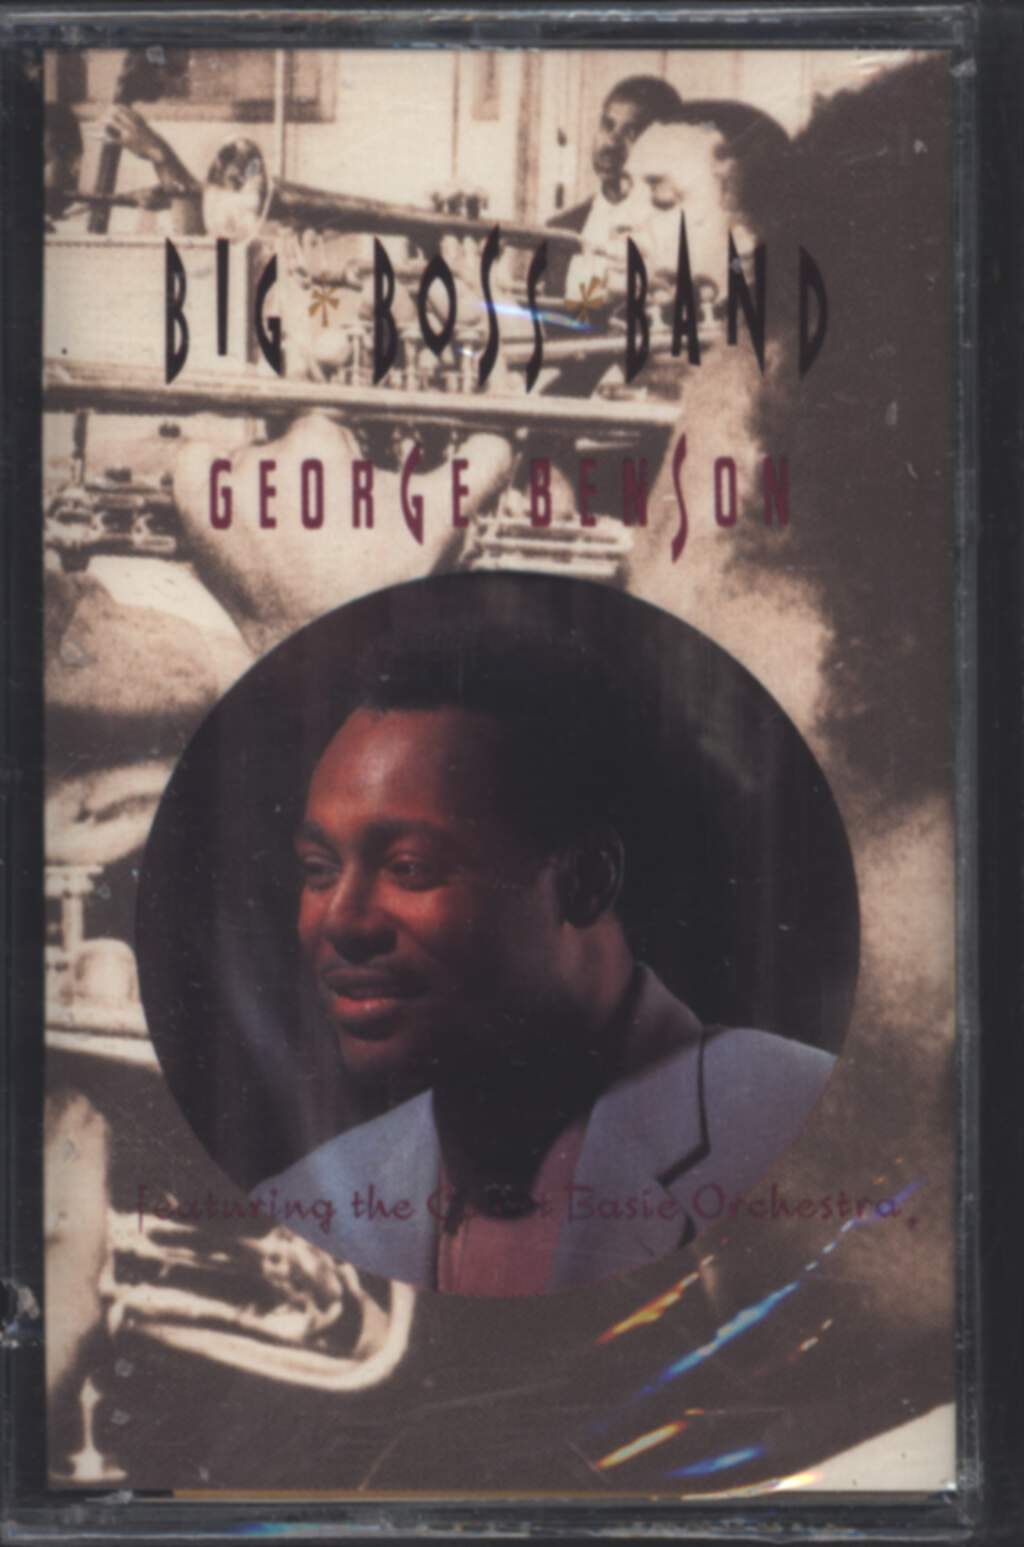 George Benson: Big Boss Band, Compact Cassette